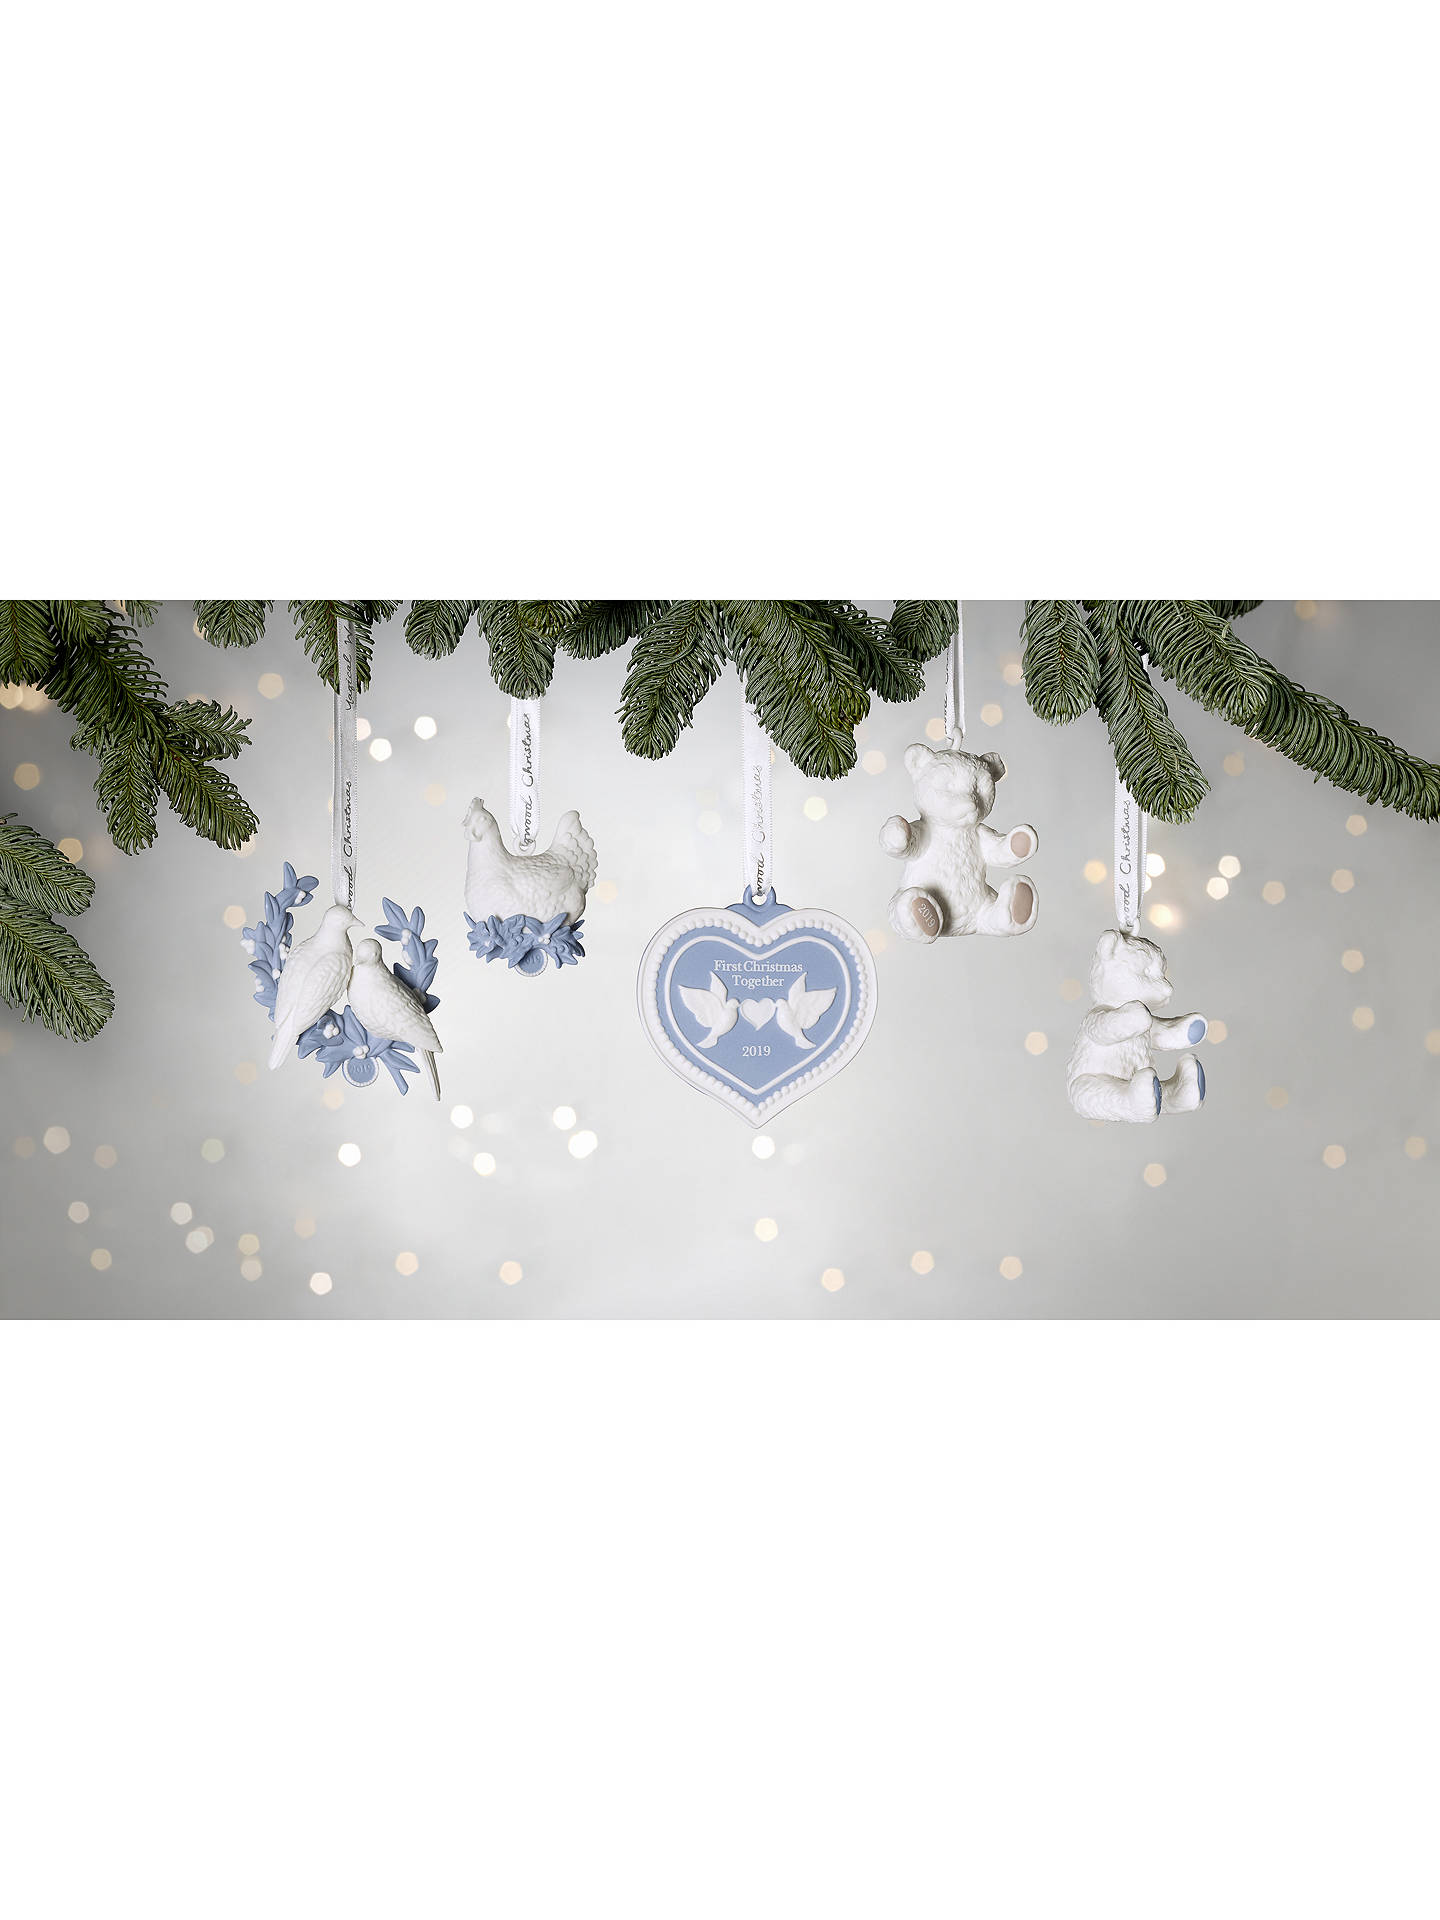 Wedgwood Christmas Ornaments 2019.Wedgwood First Christmas Together 2019 Tree Decoration